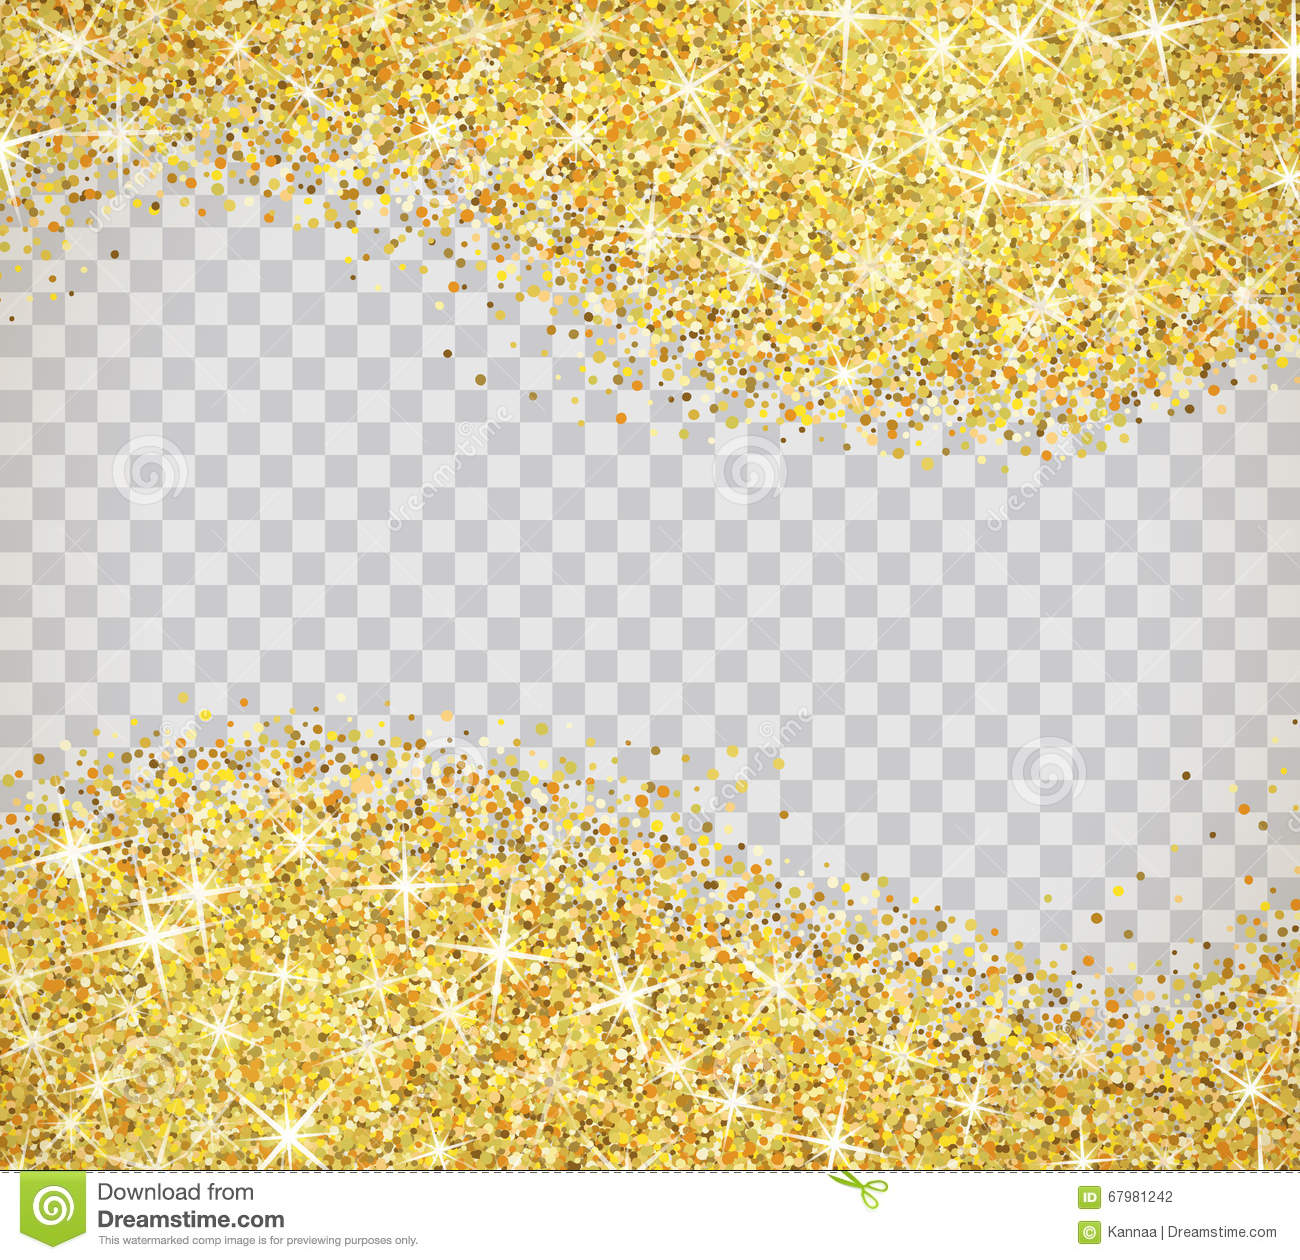 Gold glitter bright vector transparent background golden sparkles - Gold Glitter Texture With Sparkles Gold Glitter Texture Isolated On Transparent Background Vector Illustration For Golden